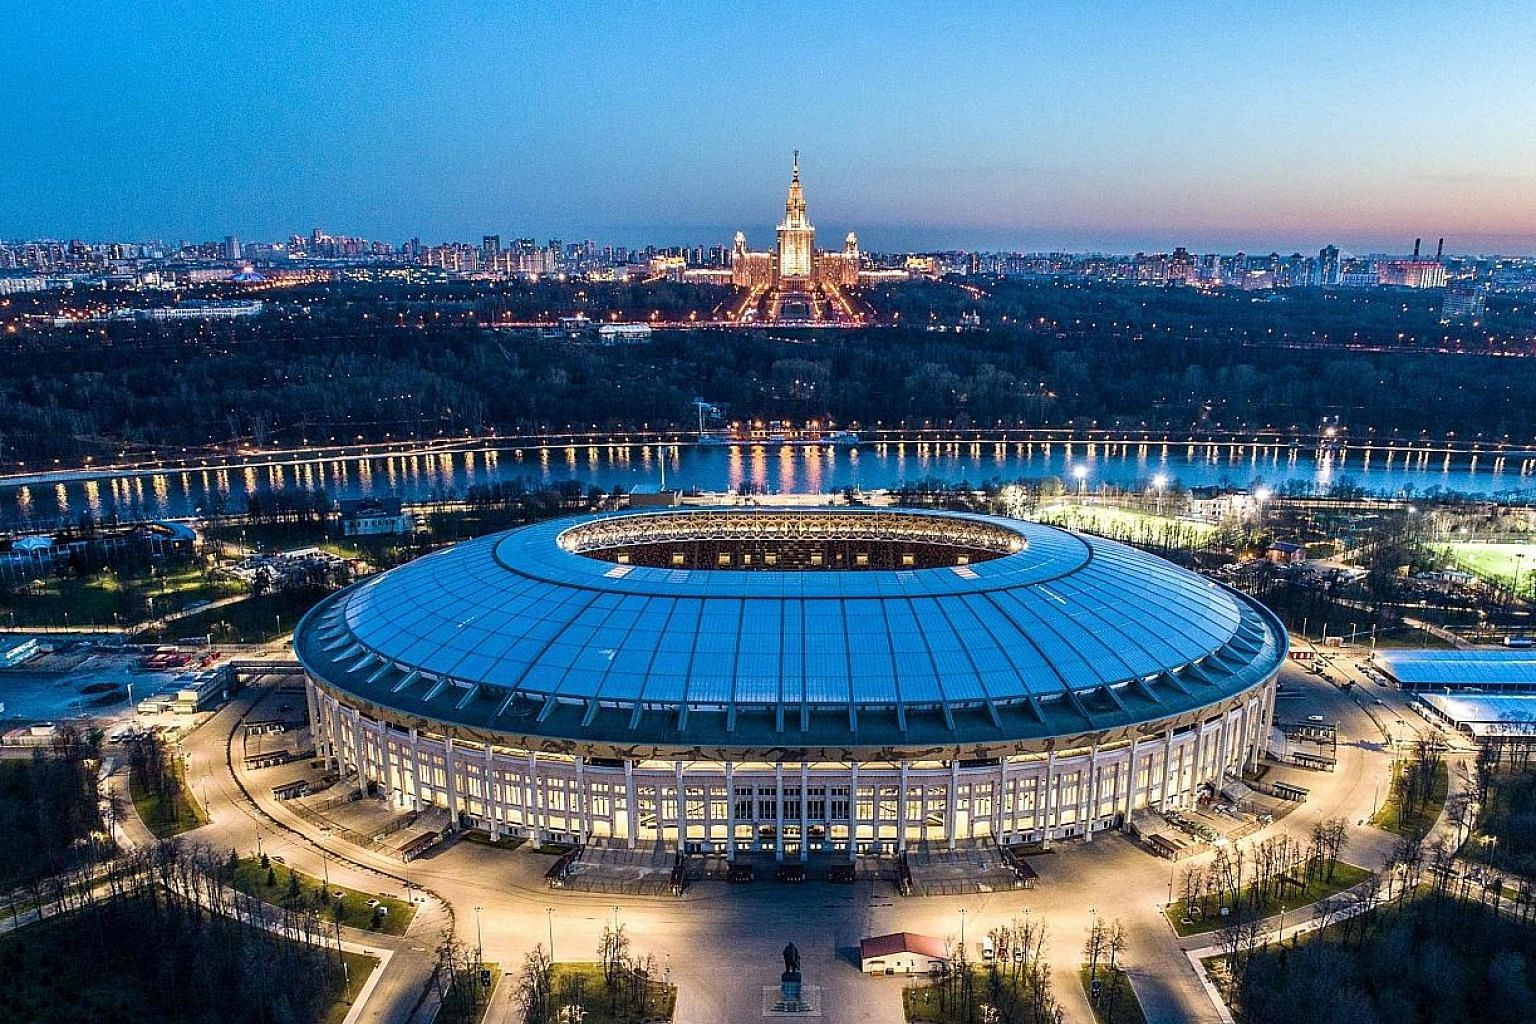 The World Cup final will take place on July 15 at the Luzhniki Stadium (left) in Moscow. Singaporeans will be able to enjoy nine key matches - the opener, five group games, both semi-finals and the final - on free-to-air television with Mediacorp, fi